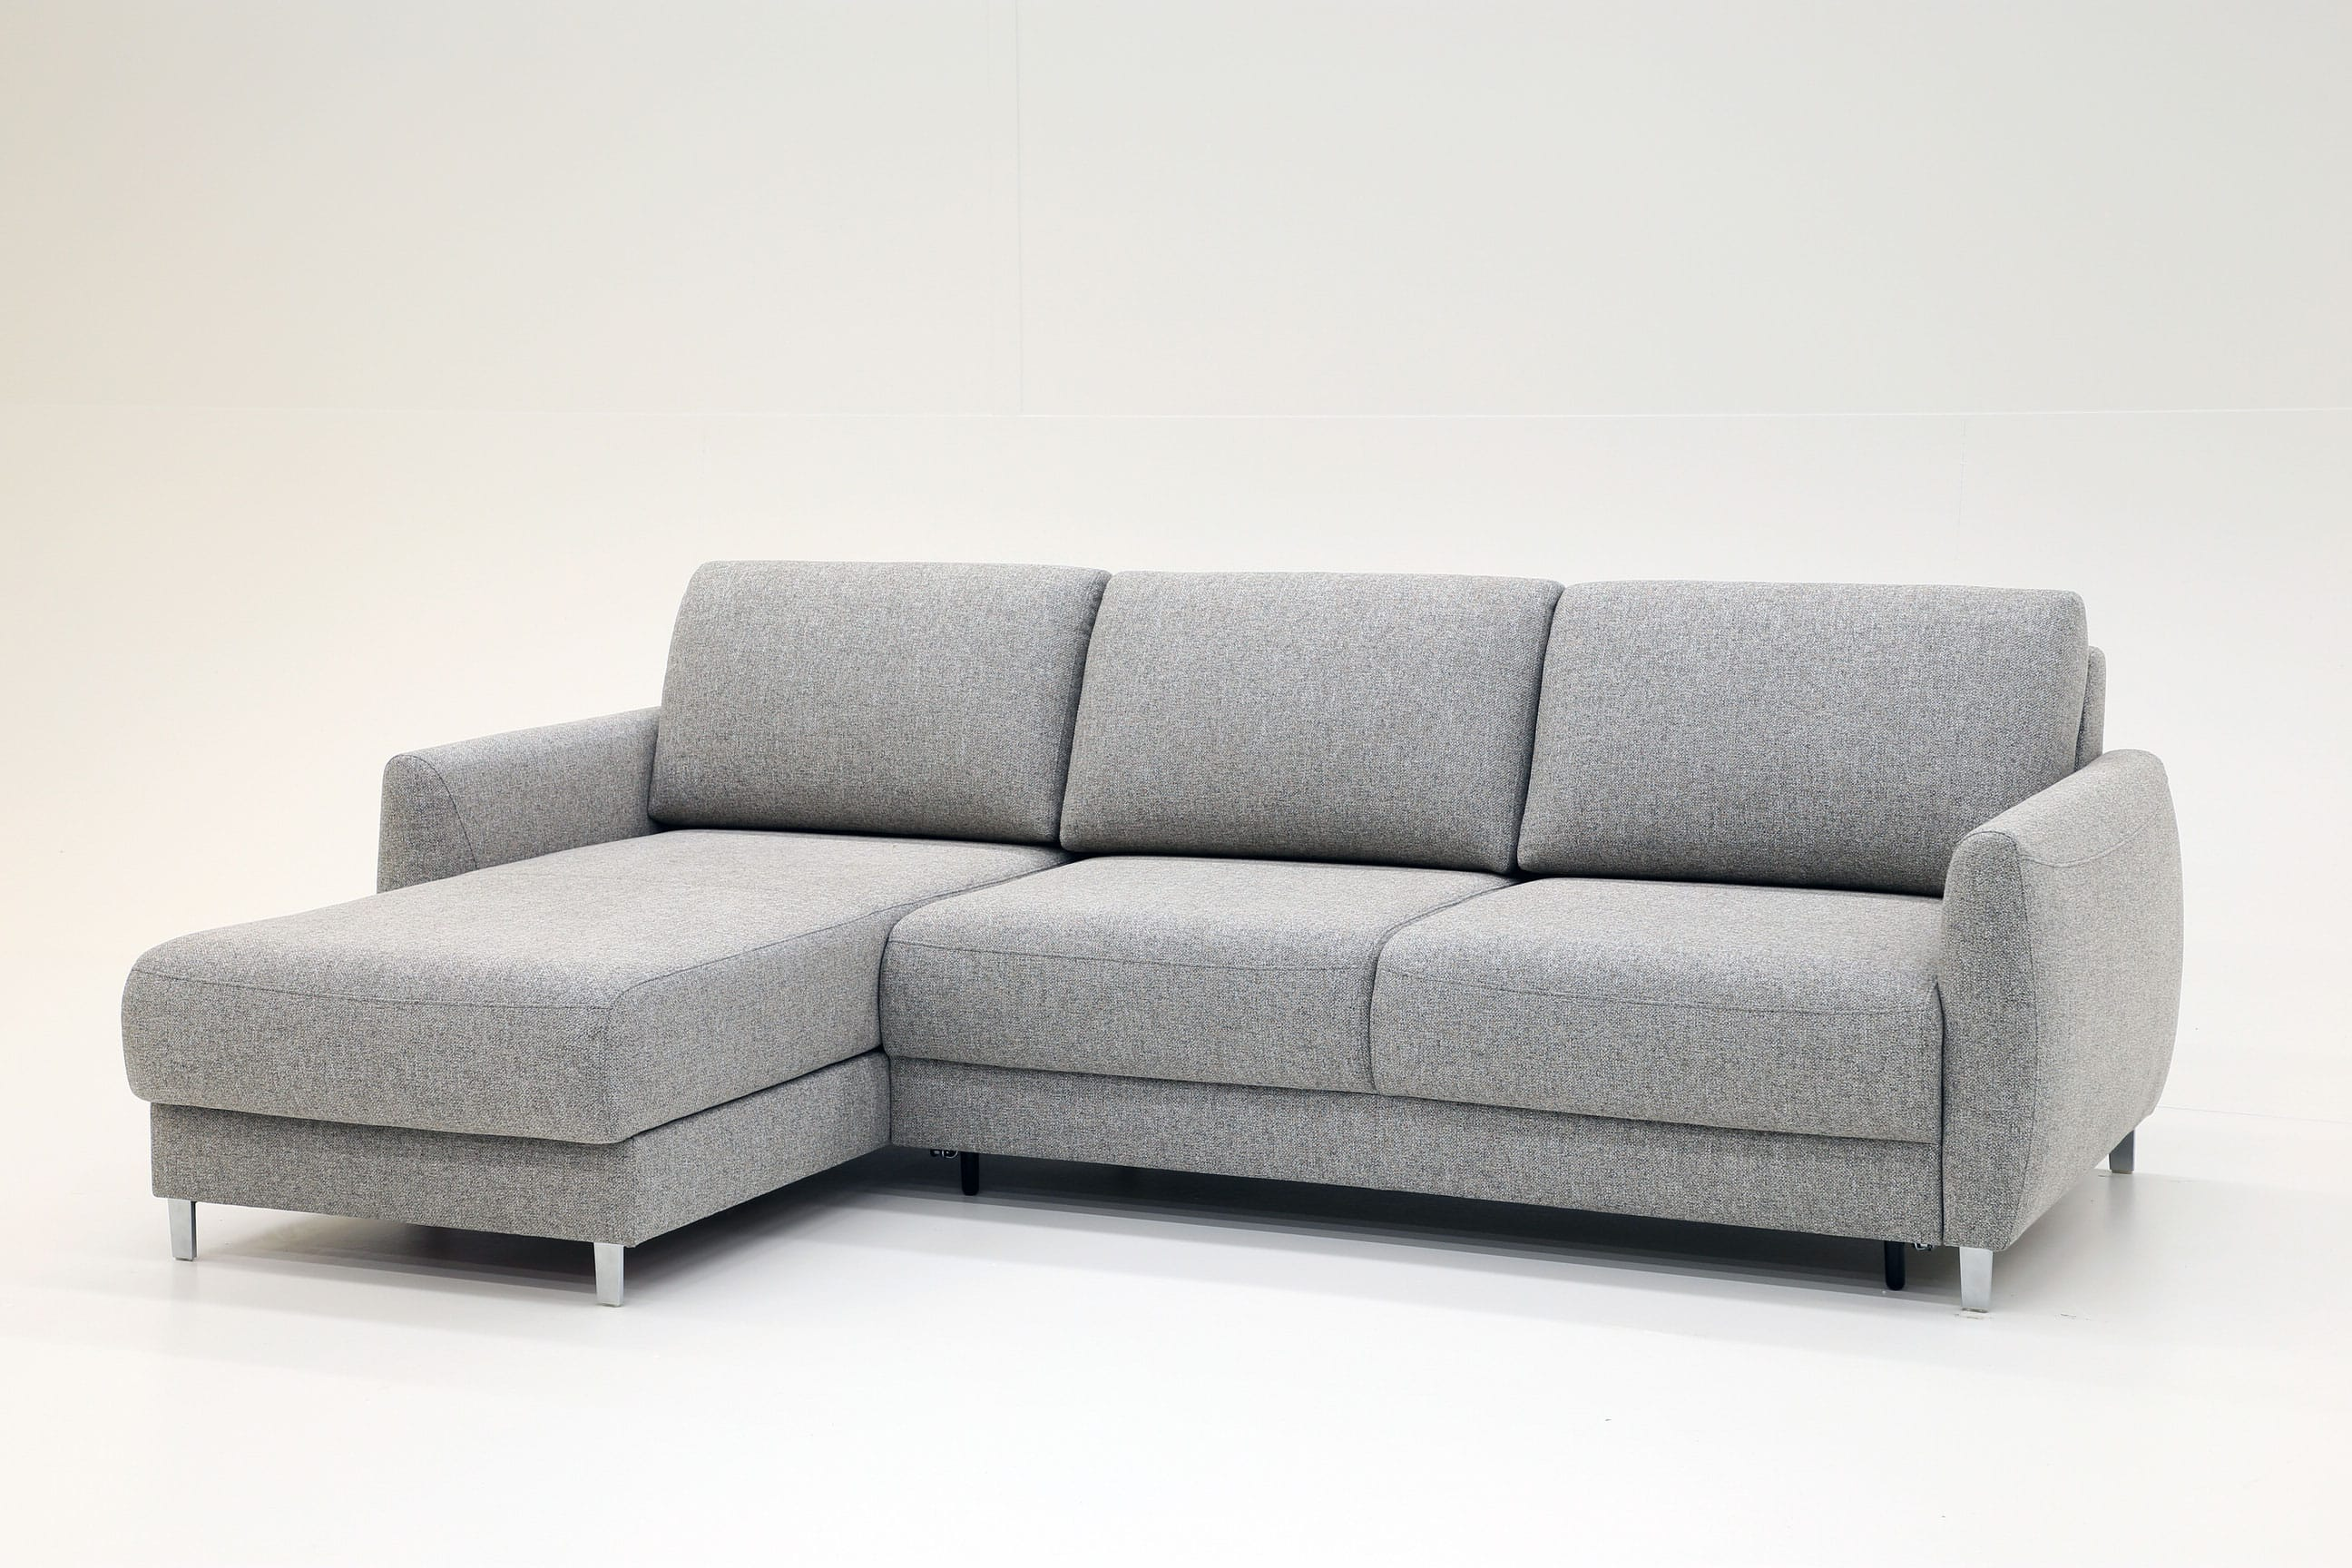 Delta Sectional Sofa Sleeper LHF by Luonto Furniture